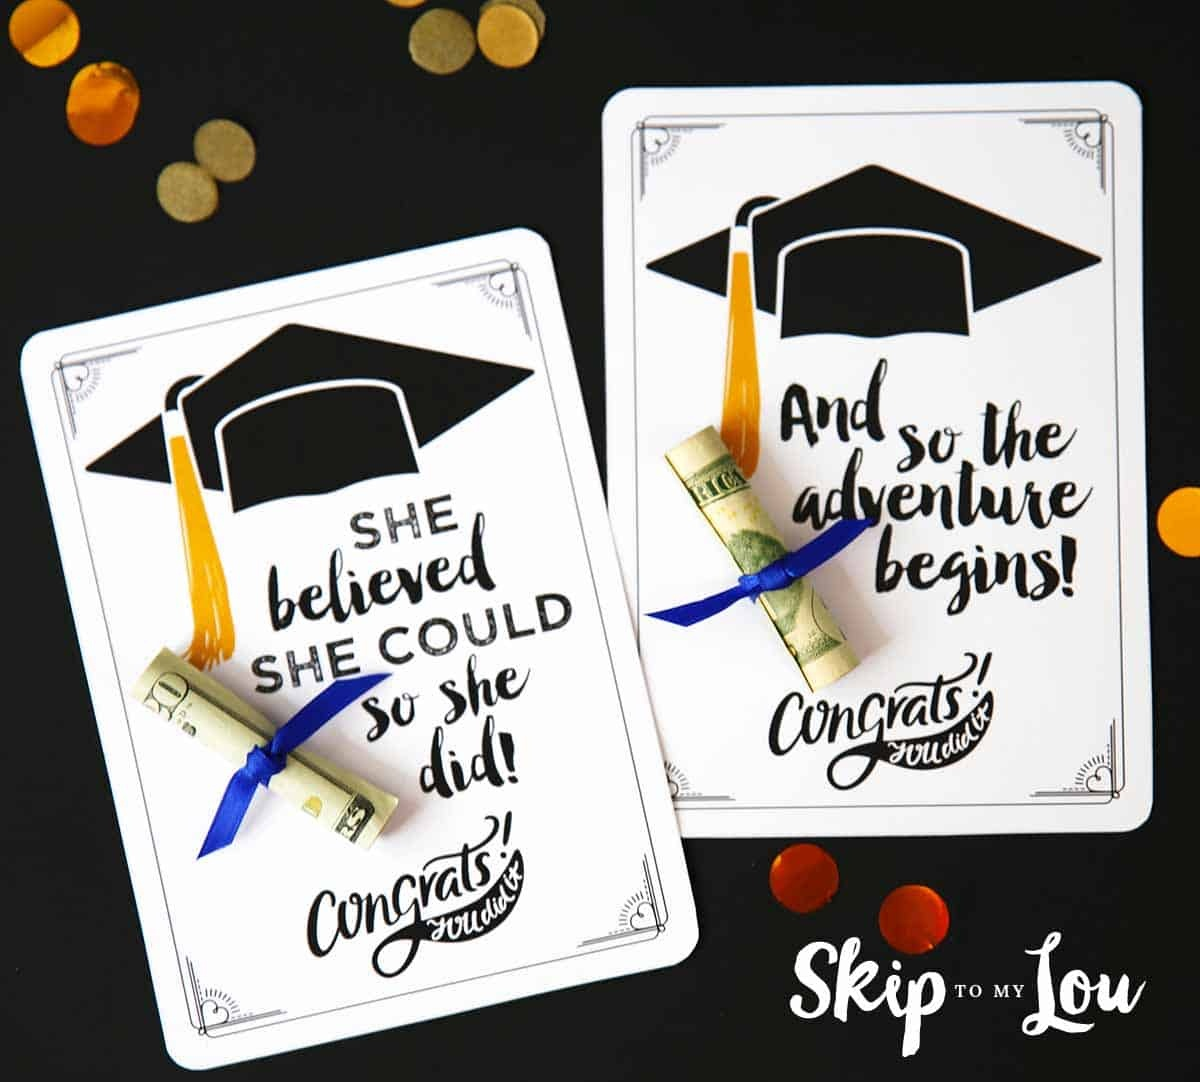 Free Graduation Cards With Positive Quotes And Cash! - Free Printable Graduation Cards To Print